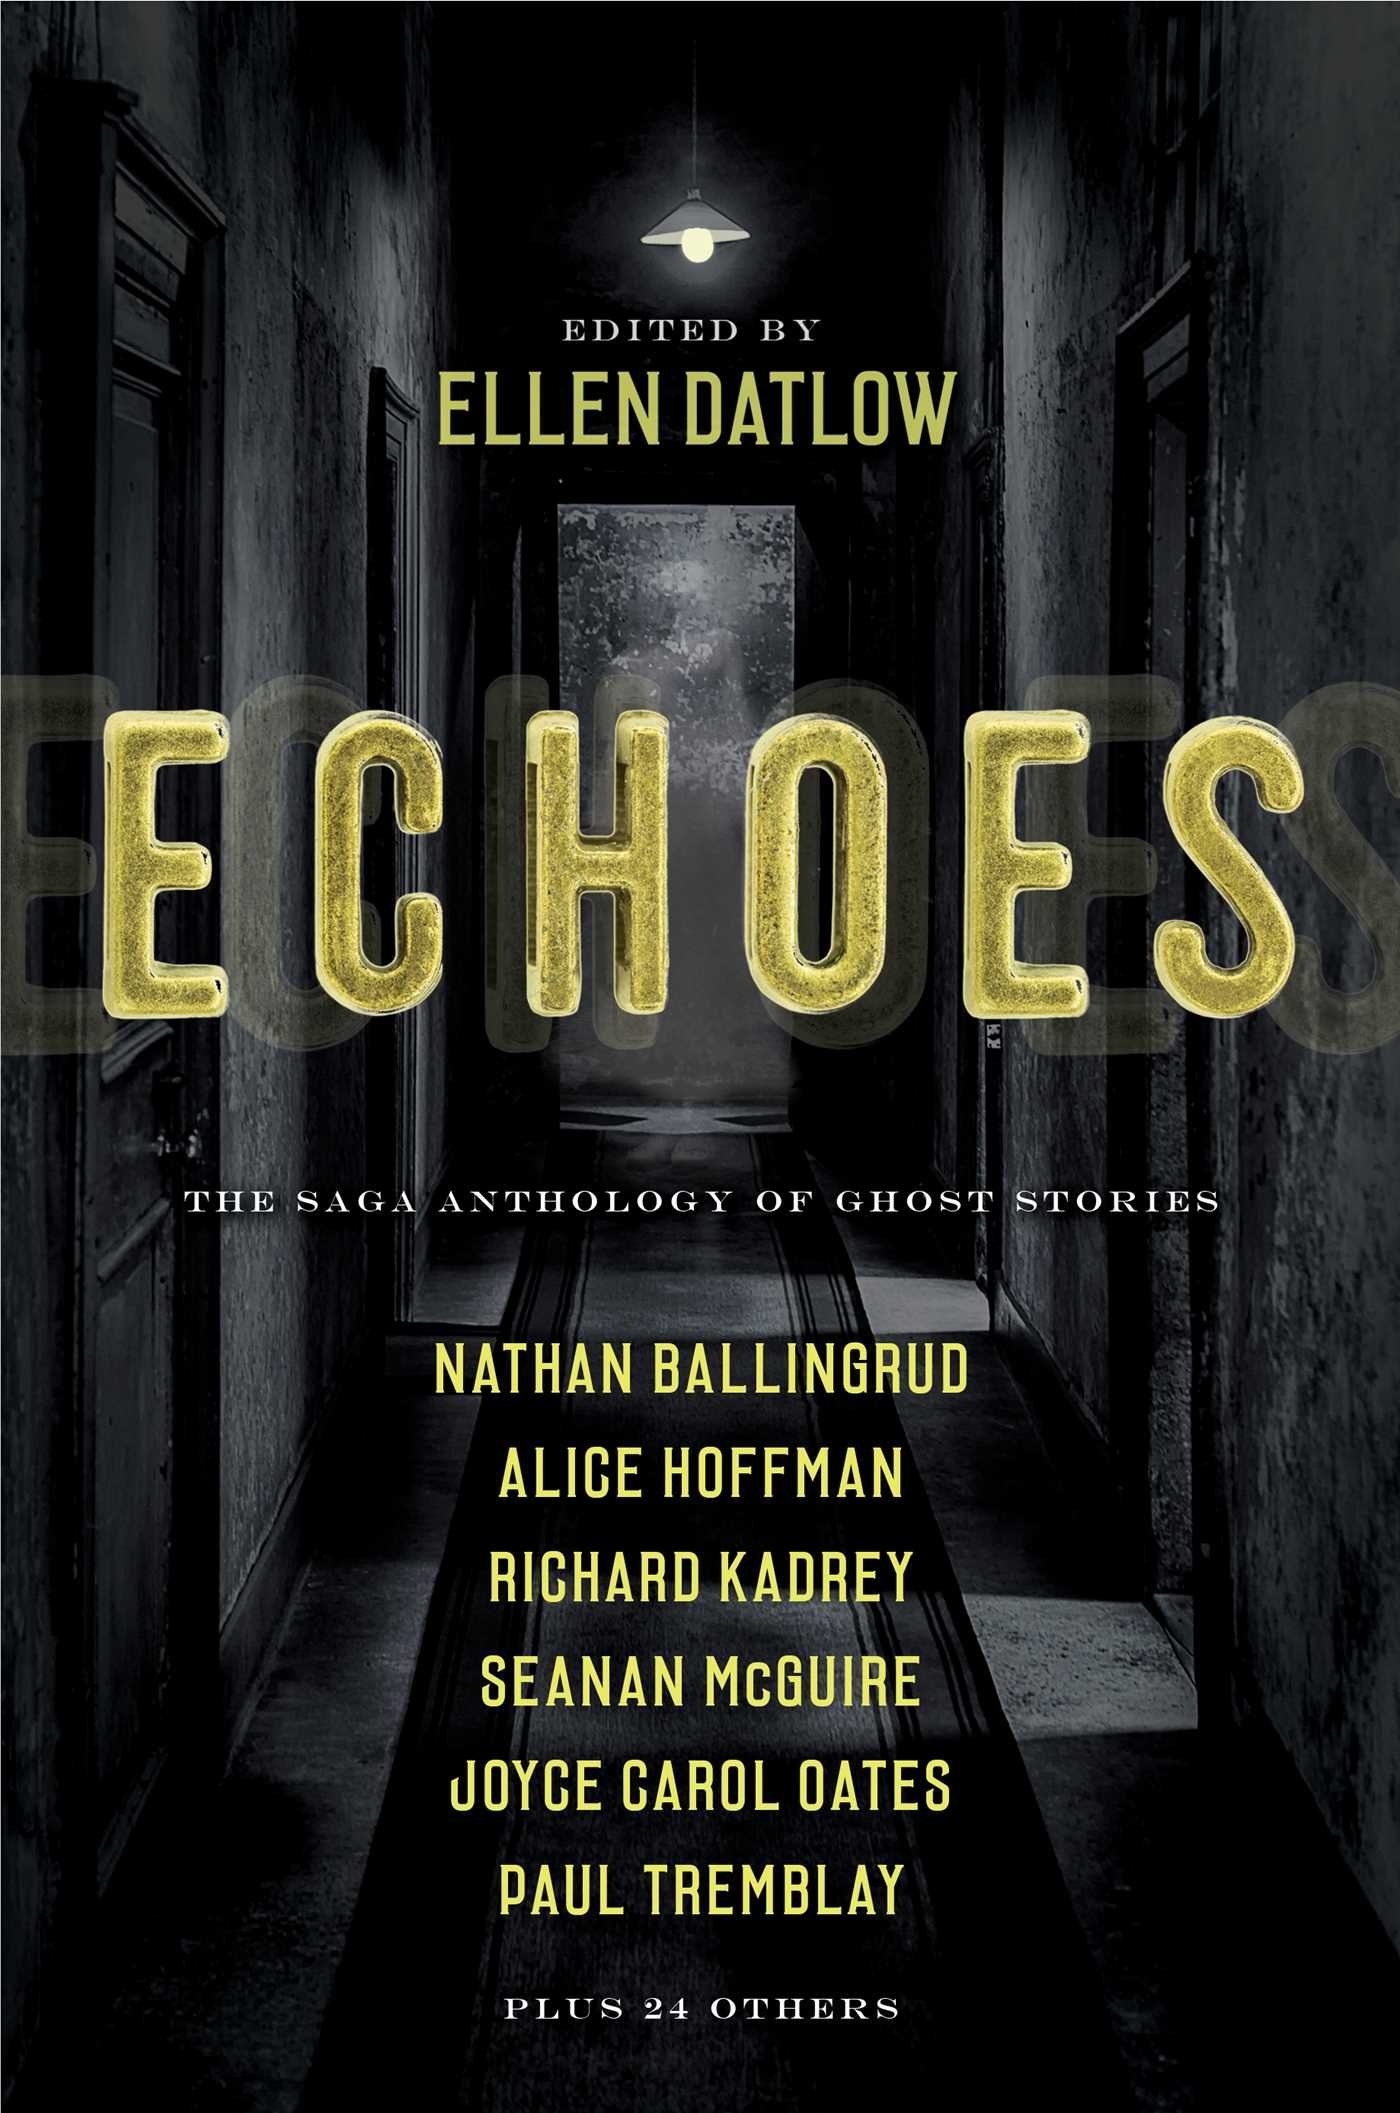 Image result for echoes the saga anthology of ghost stories